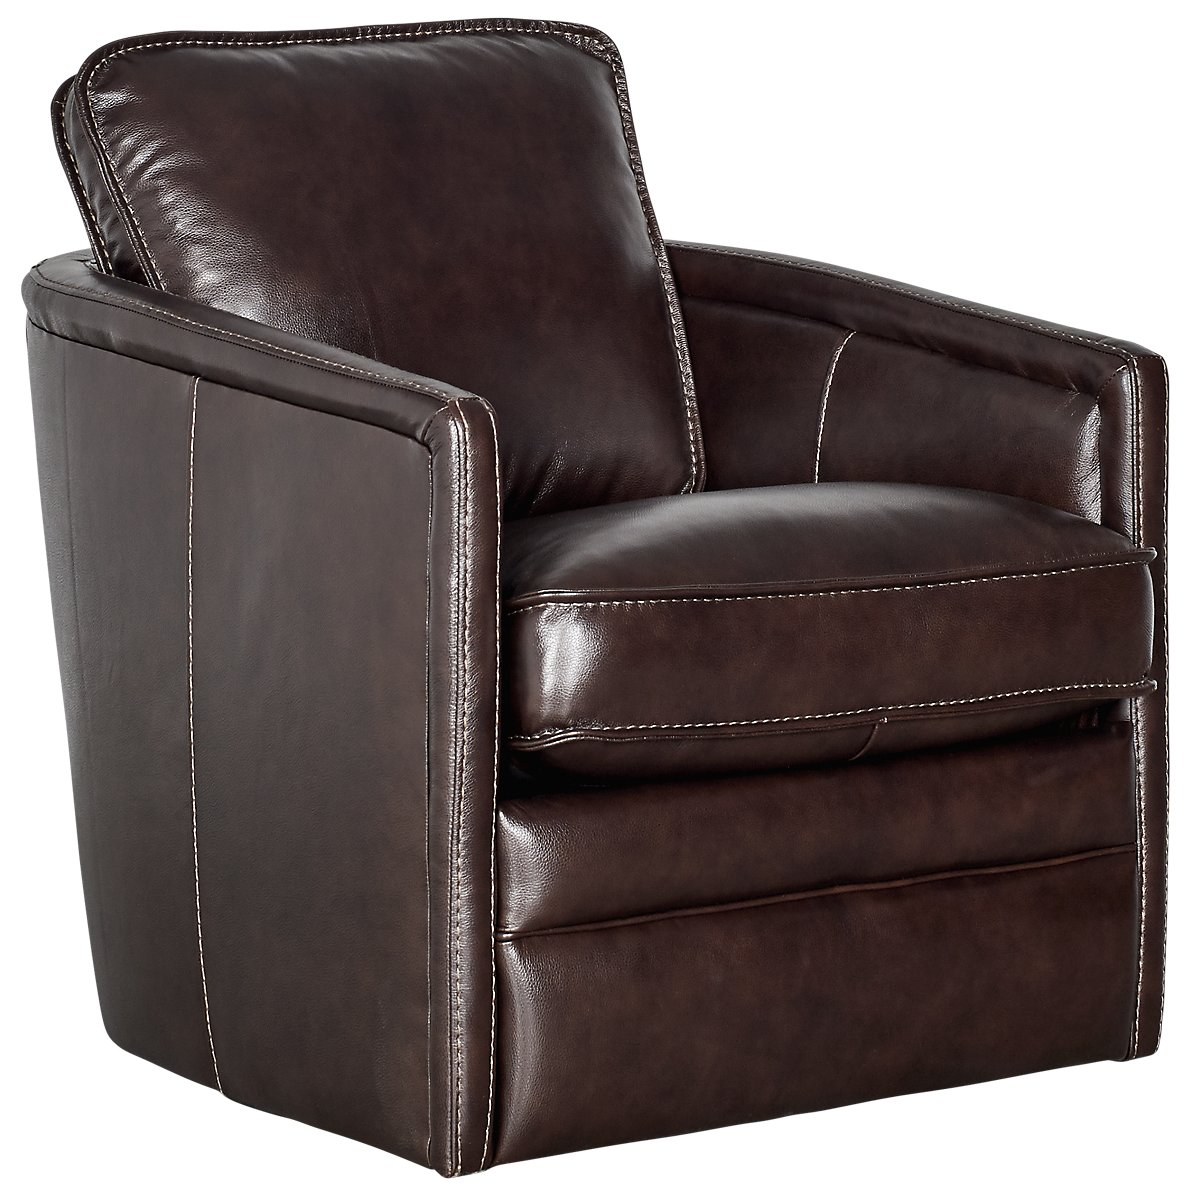 Alexander Dark Brown Leather Swivel Chair | Living Room - Chairs ...